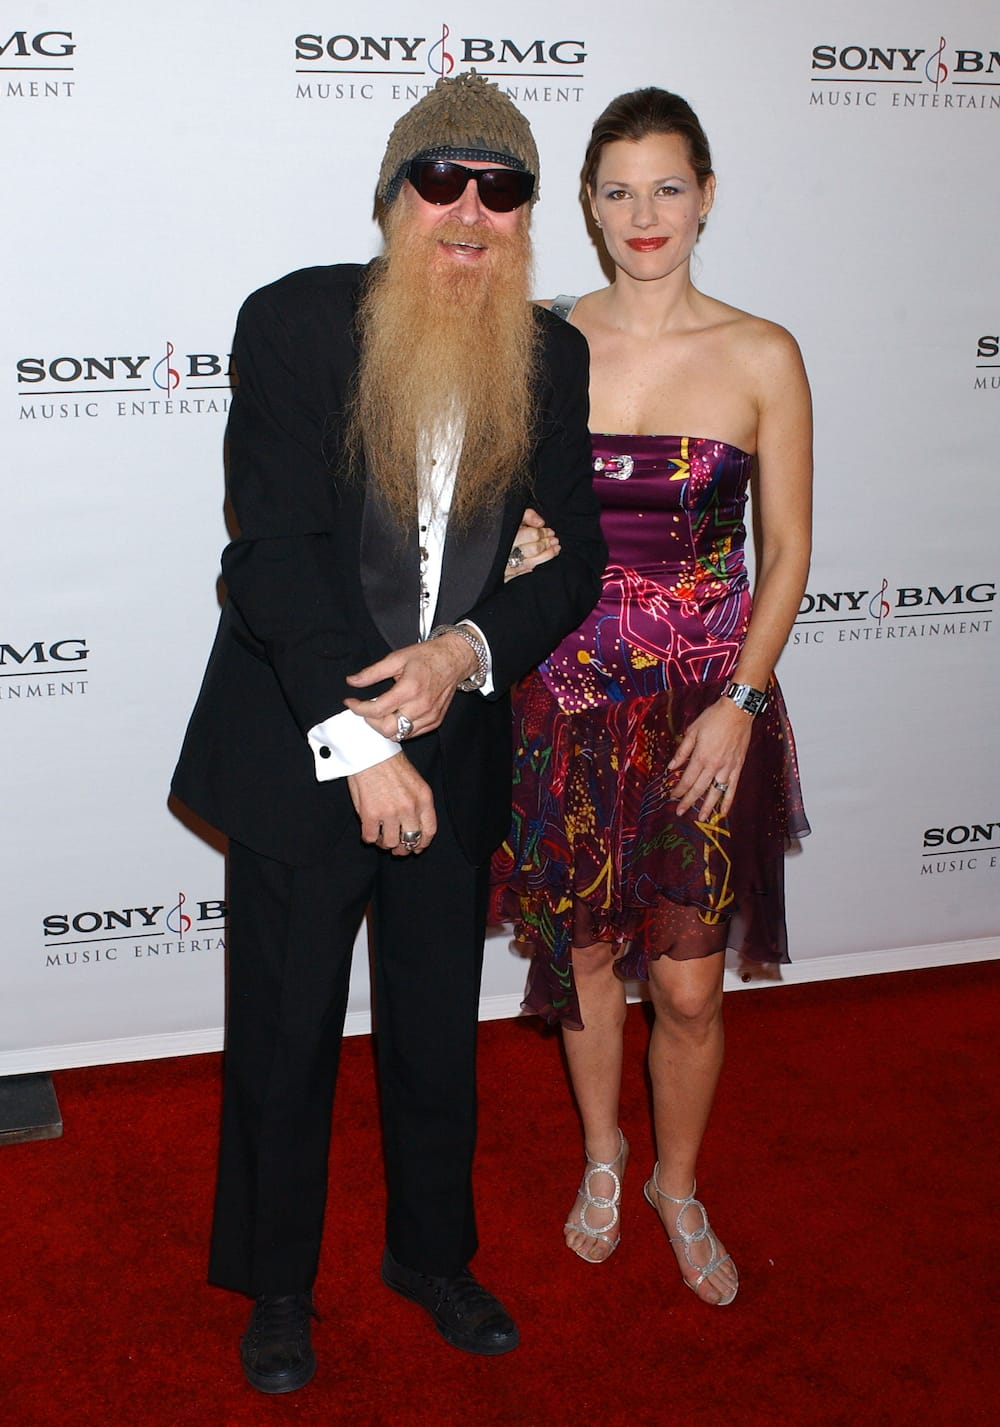 Billy Gibbons's wife